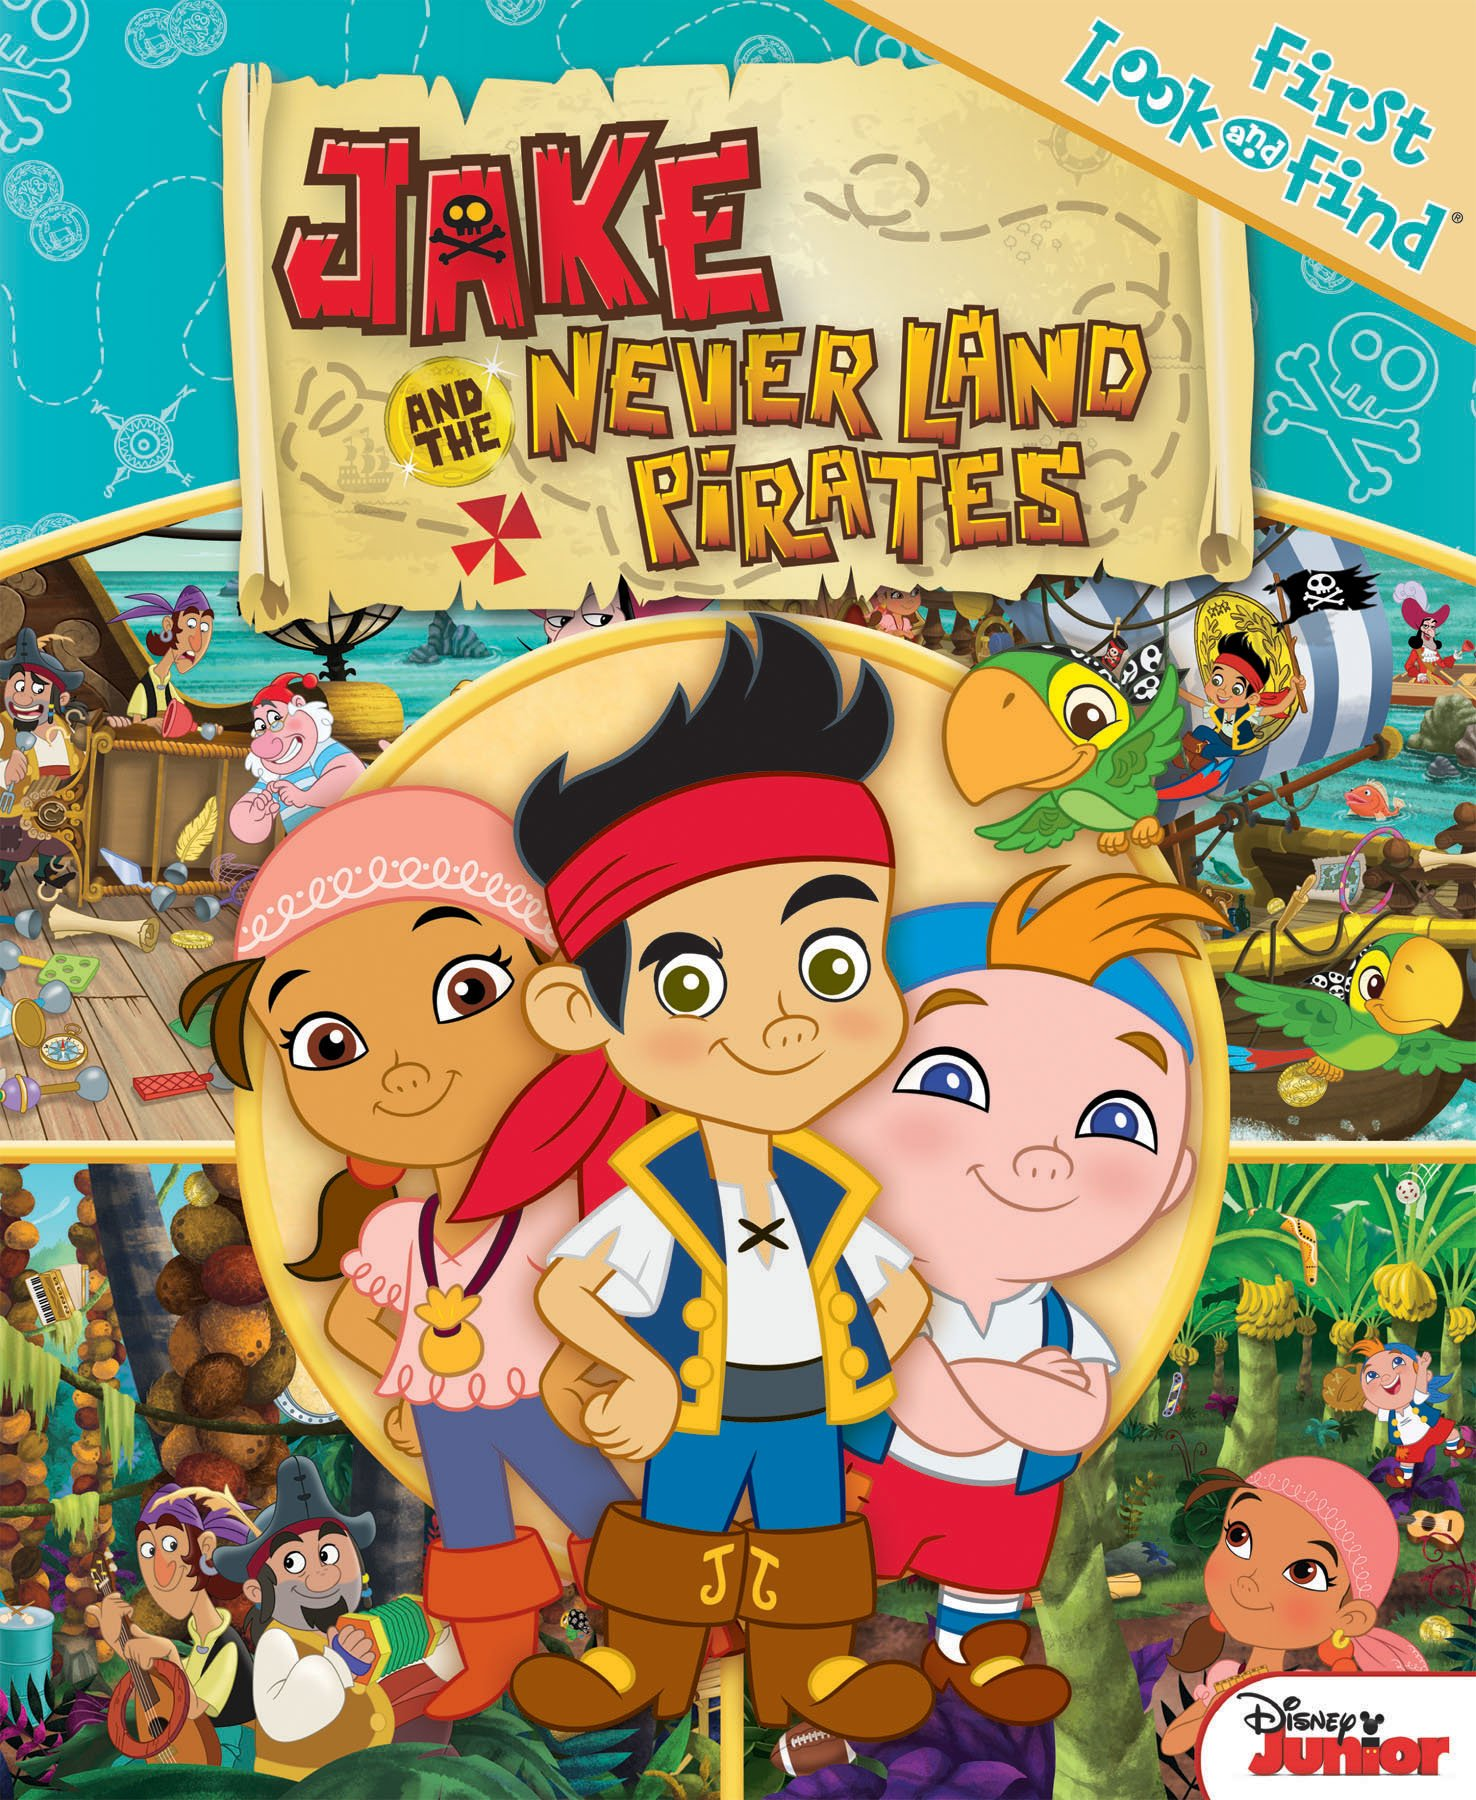 My First Look Find Jake And The Neverland Pirates First Look And Find Editors Of Publications International 9781450843942 Amazon Com Books